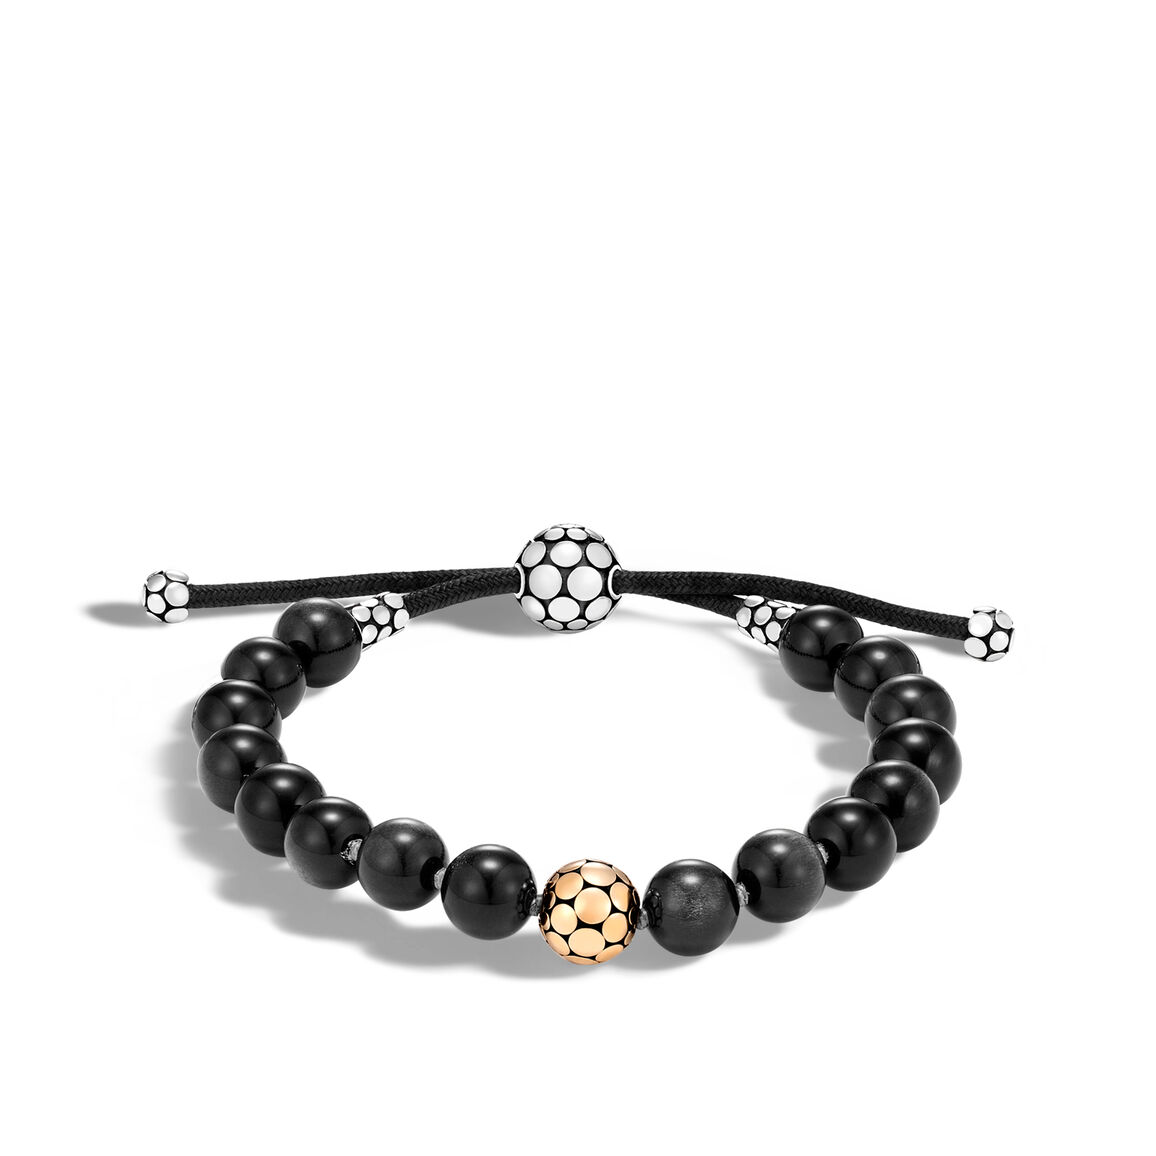 Dot Pull Through Bead Bracelet in Silver and 18K Gold with 8MM Gemstone